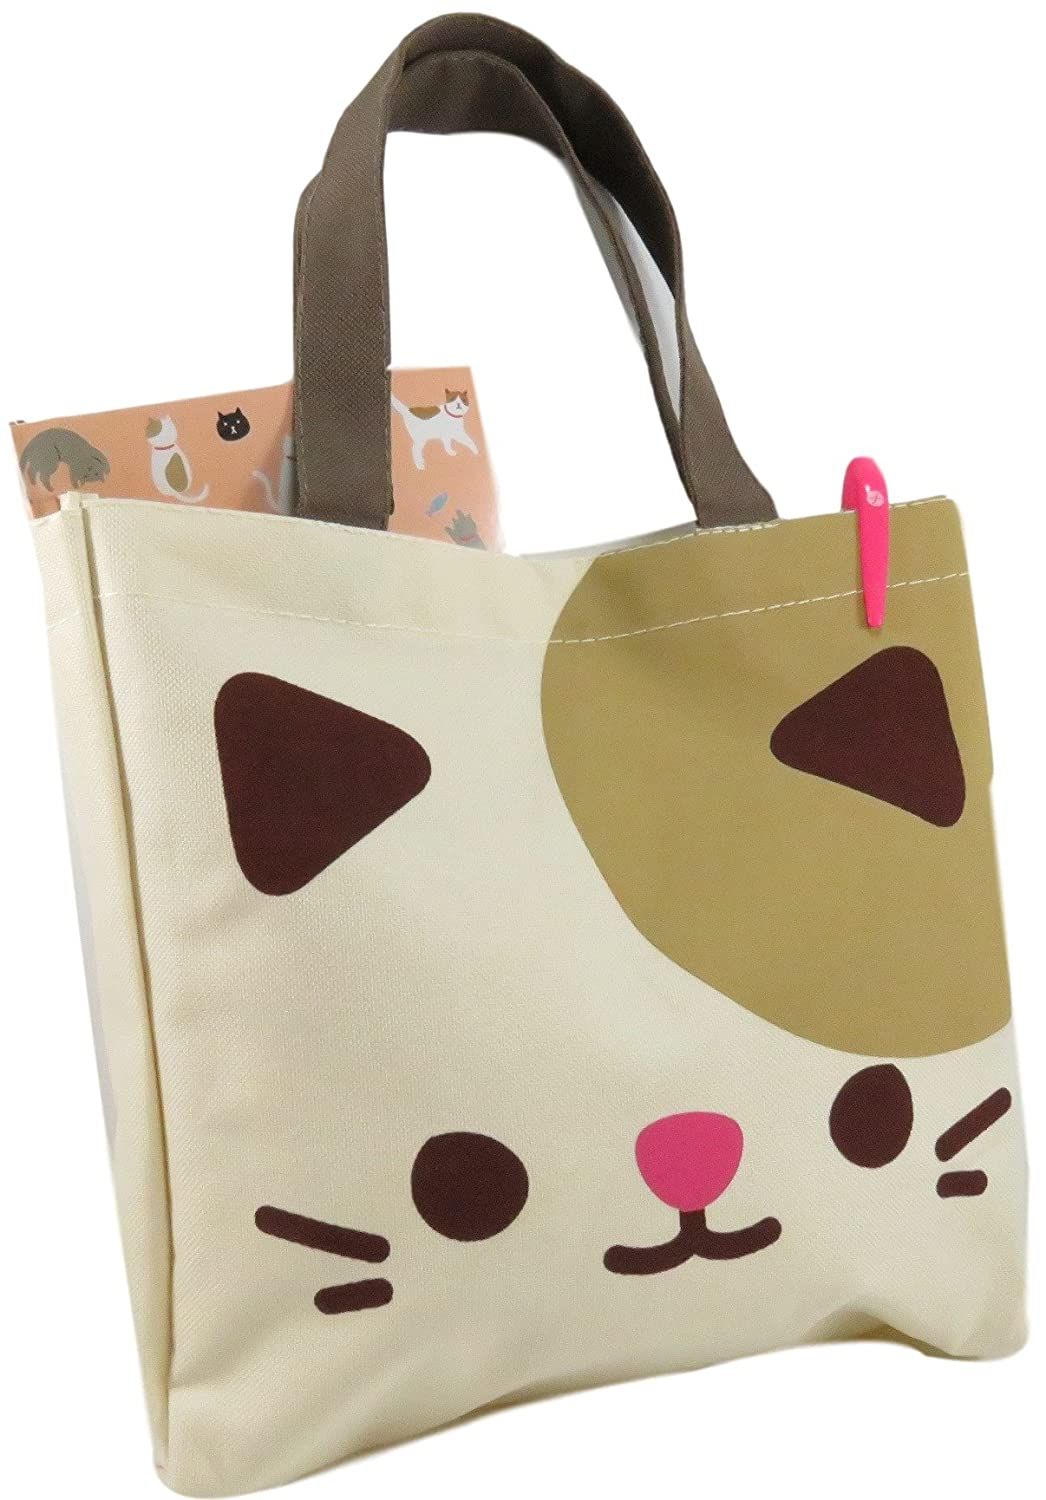 Daiso Cute Kitty Cat Tote Bag Purse 10.75 x 10.5 Canvas Polyester Beige Brown Pink